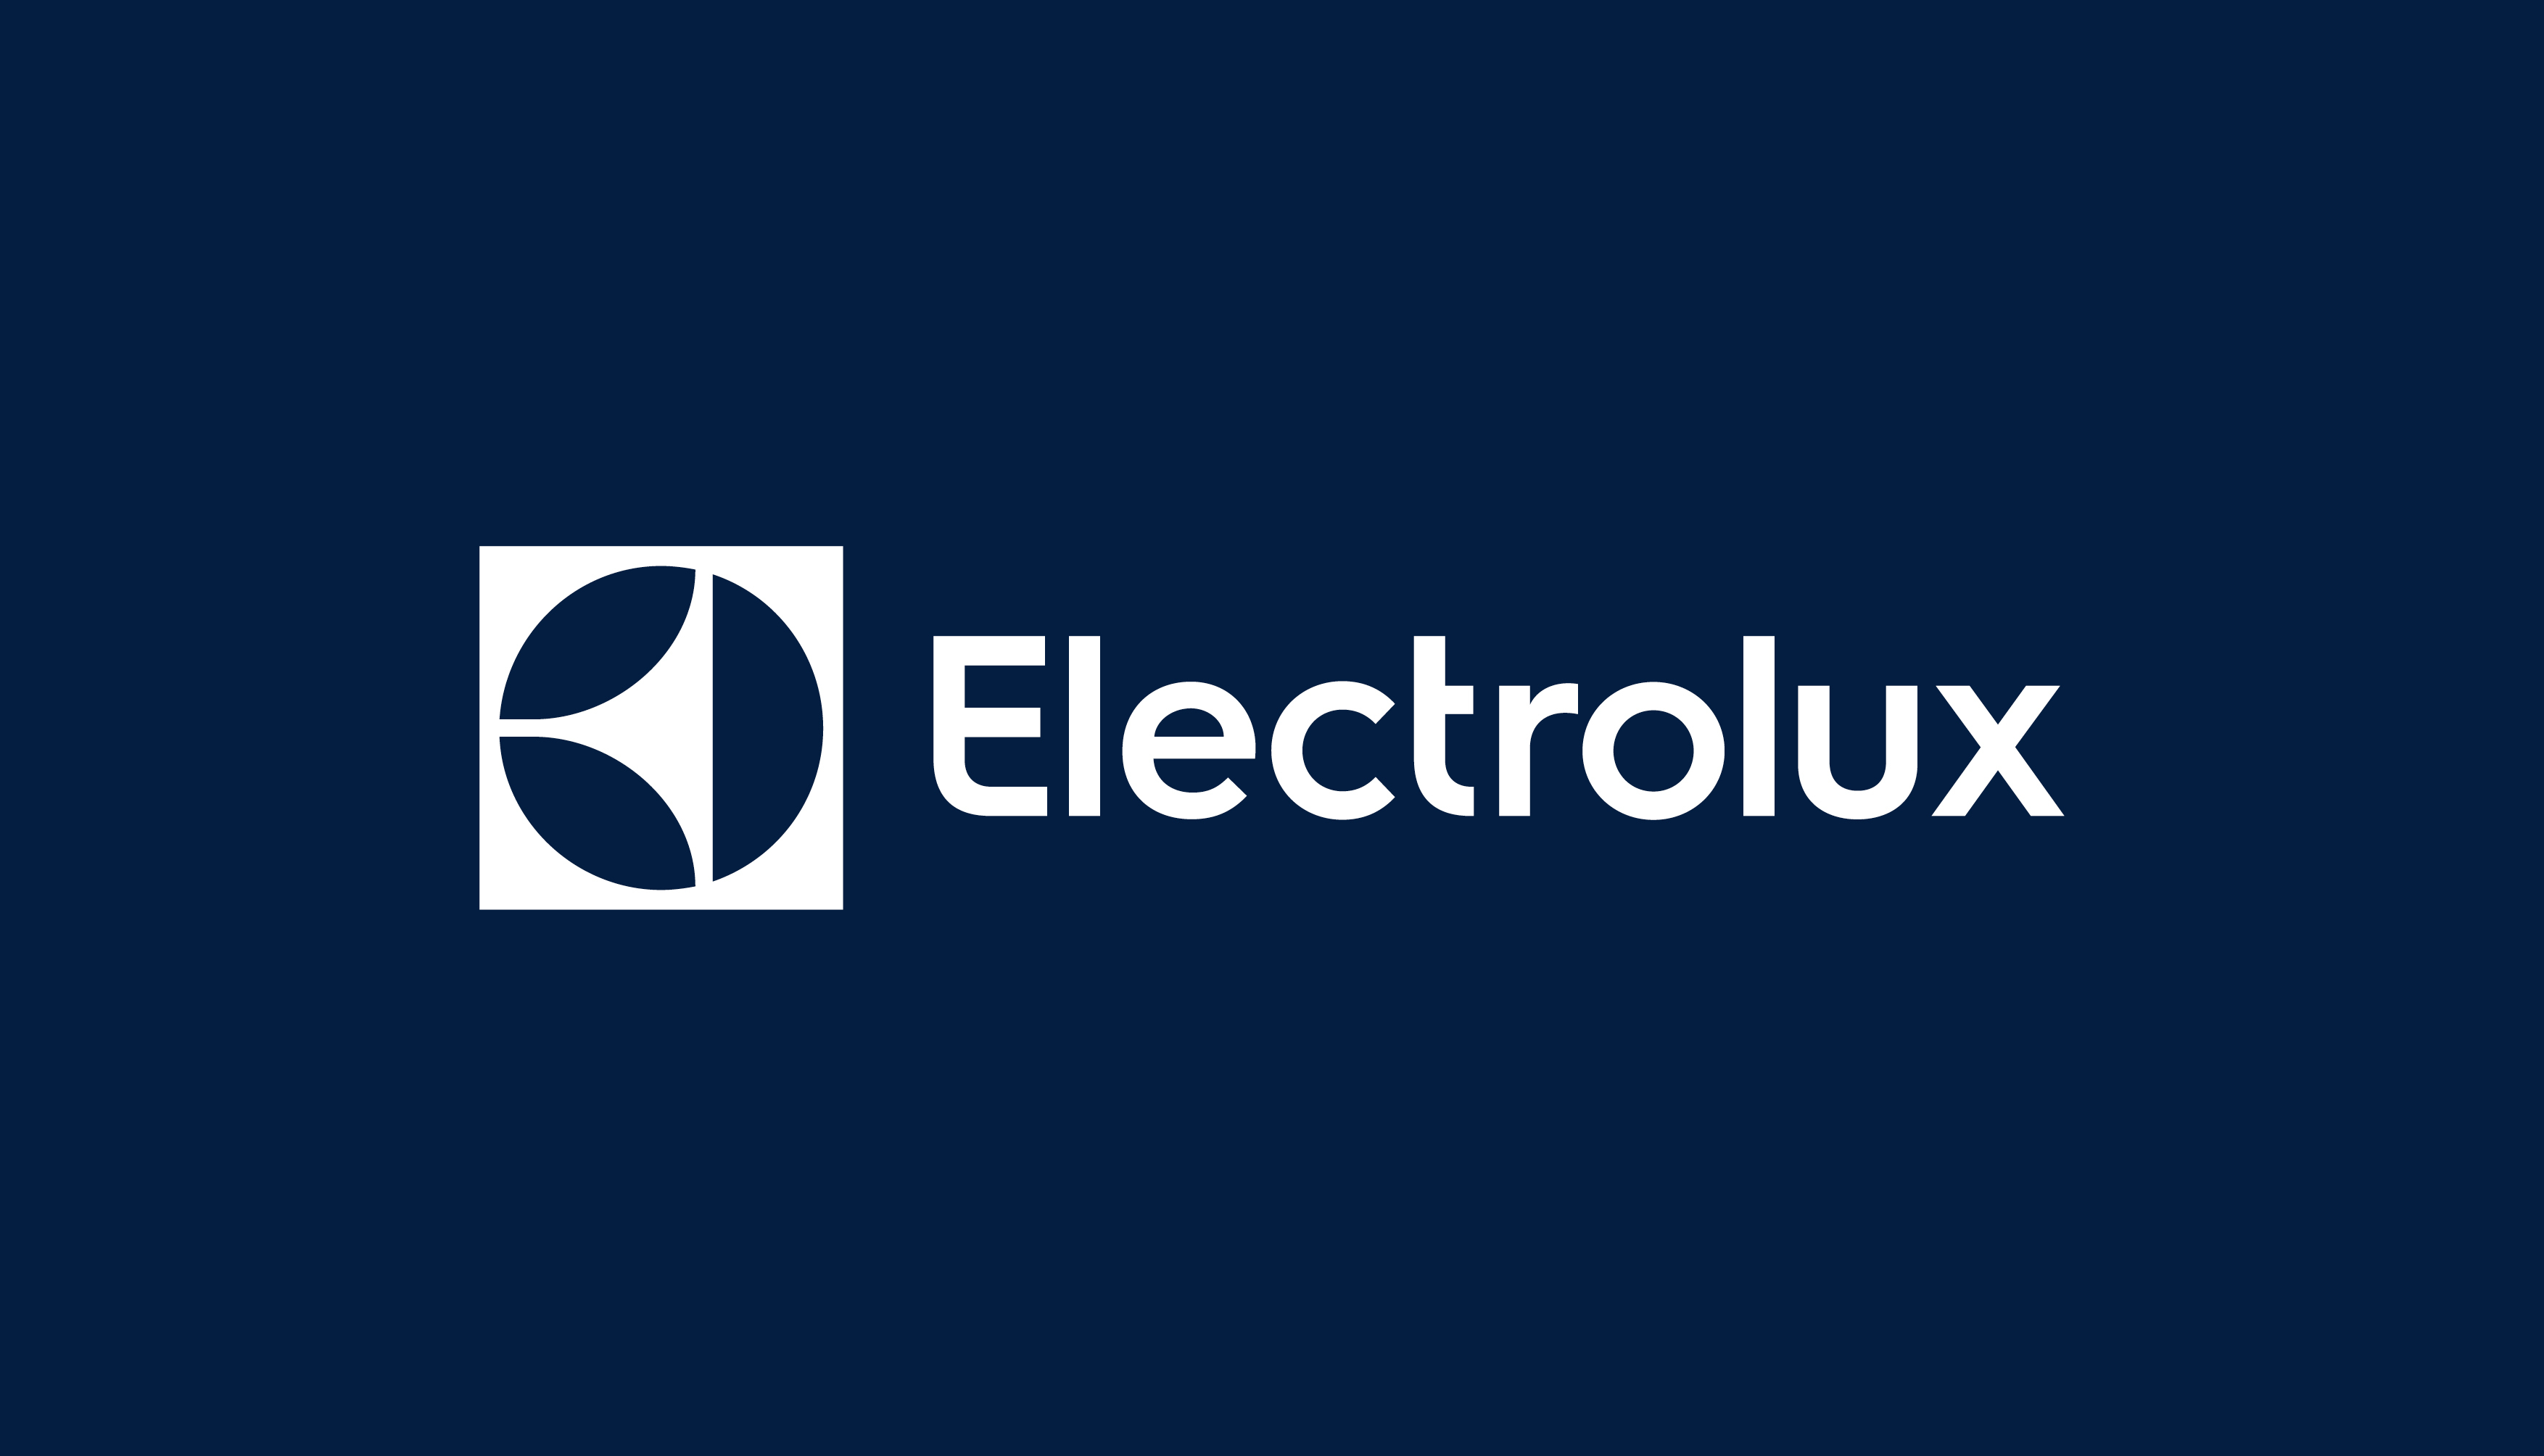 The Branding Source: Electrolux reveals new logo that